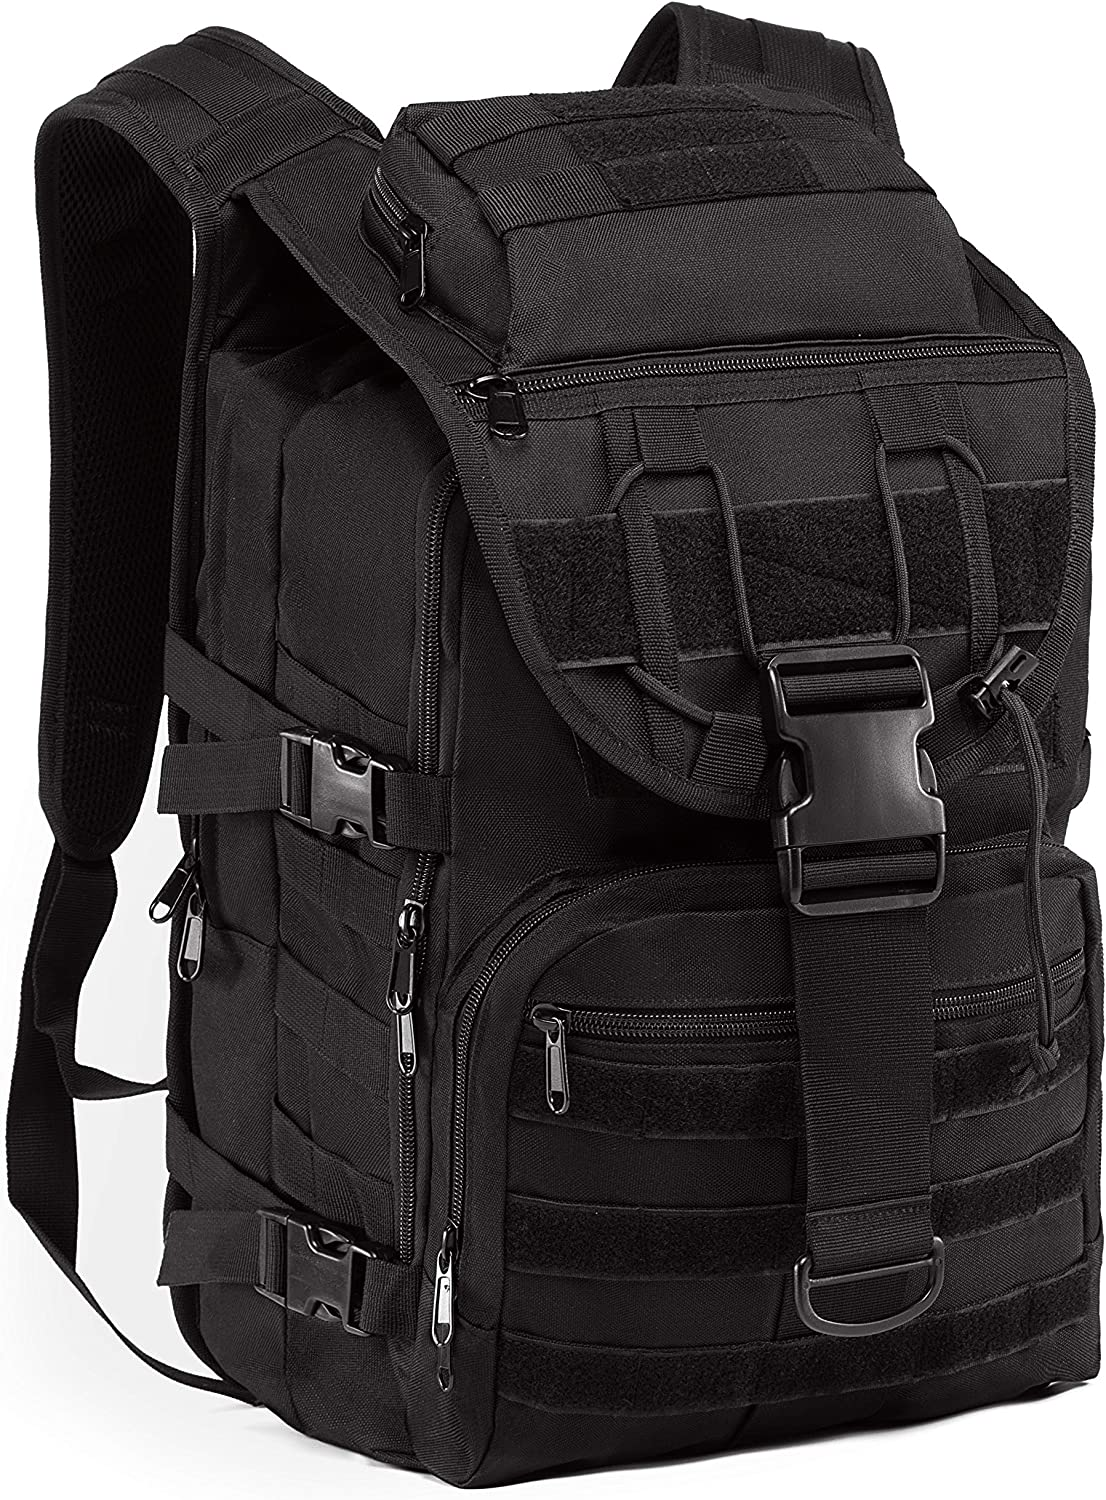 Supersun Tactical Military Backpack Molle - 35L Tactical Backpack Laptop Rucksack Survival Bag Bugout Assault Pack